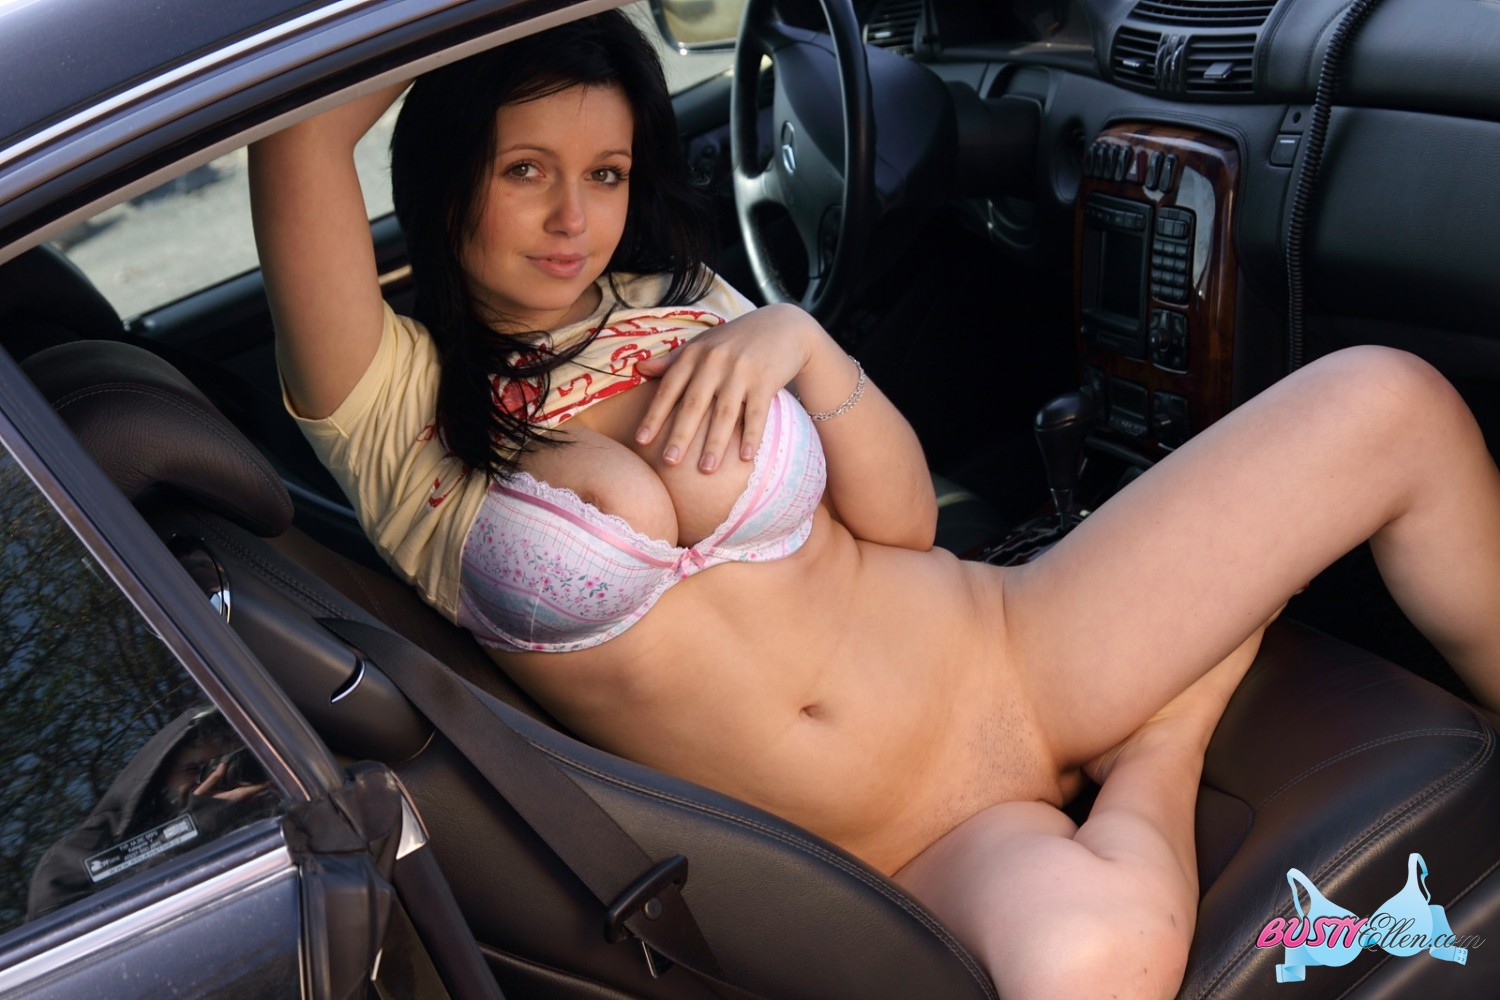 Busty girl stirps in car agree, very